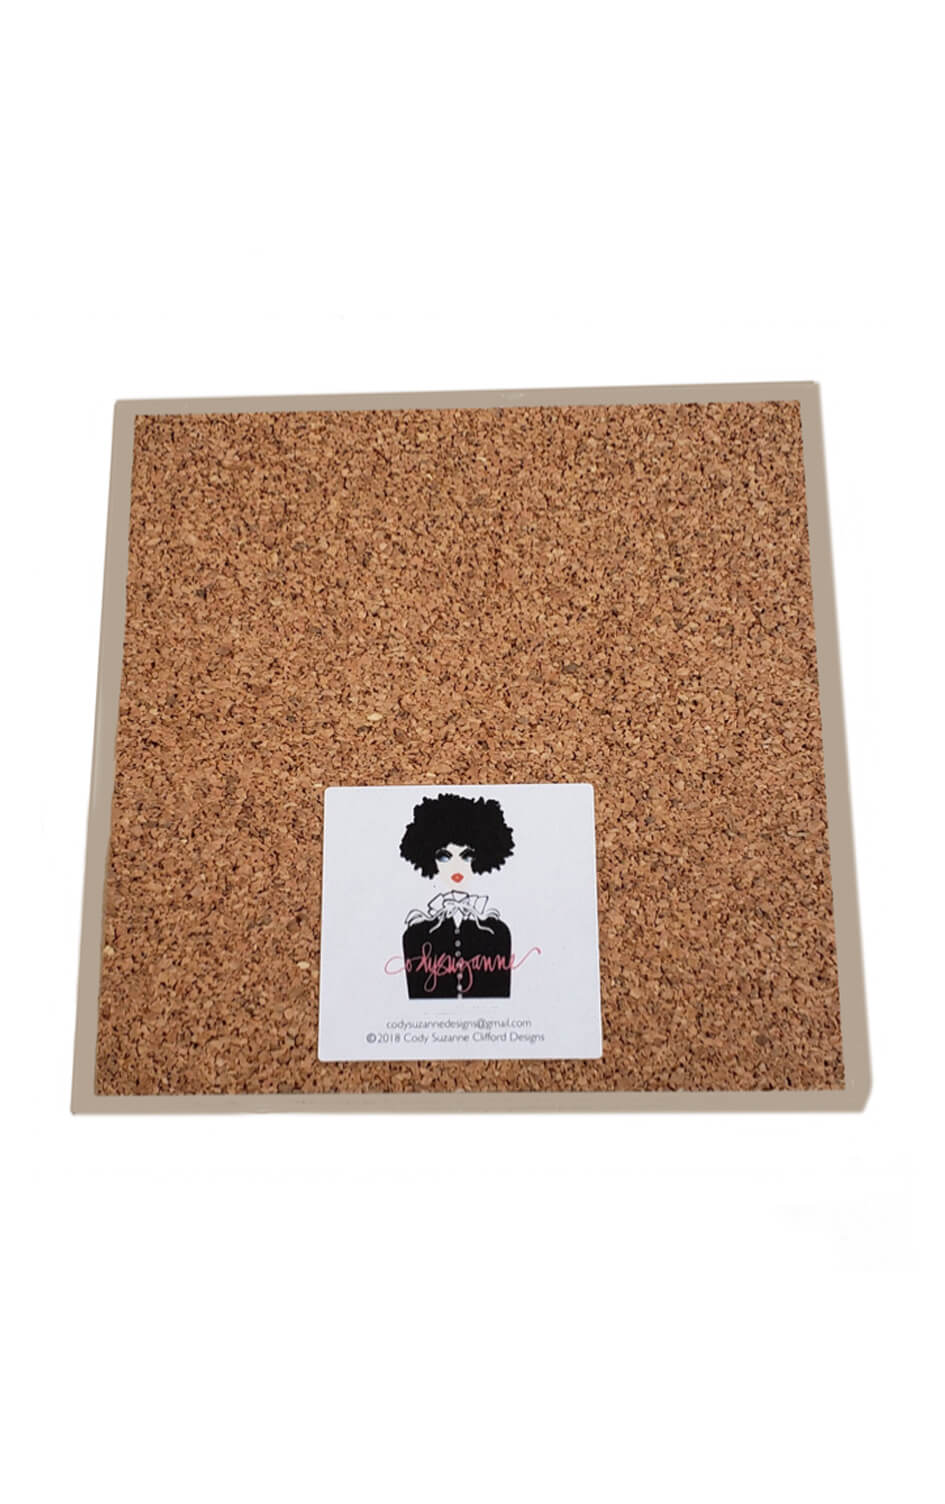 art-basel-multi-color-coaster-cork-back